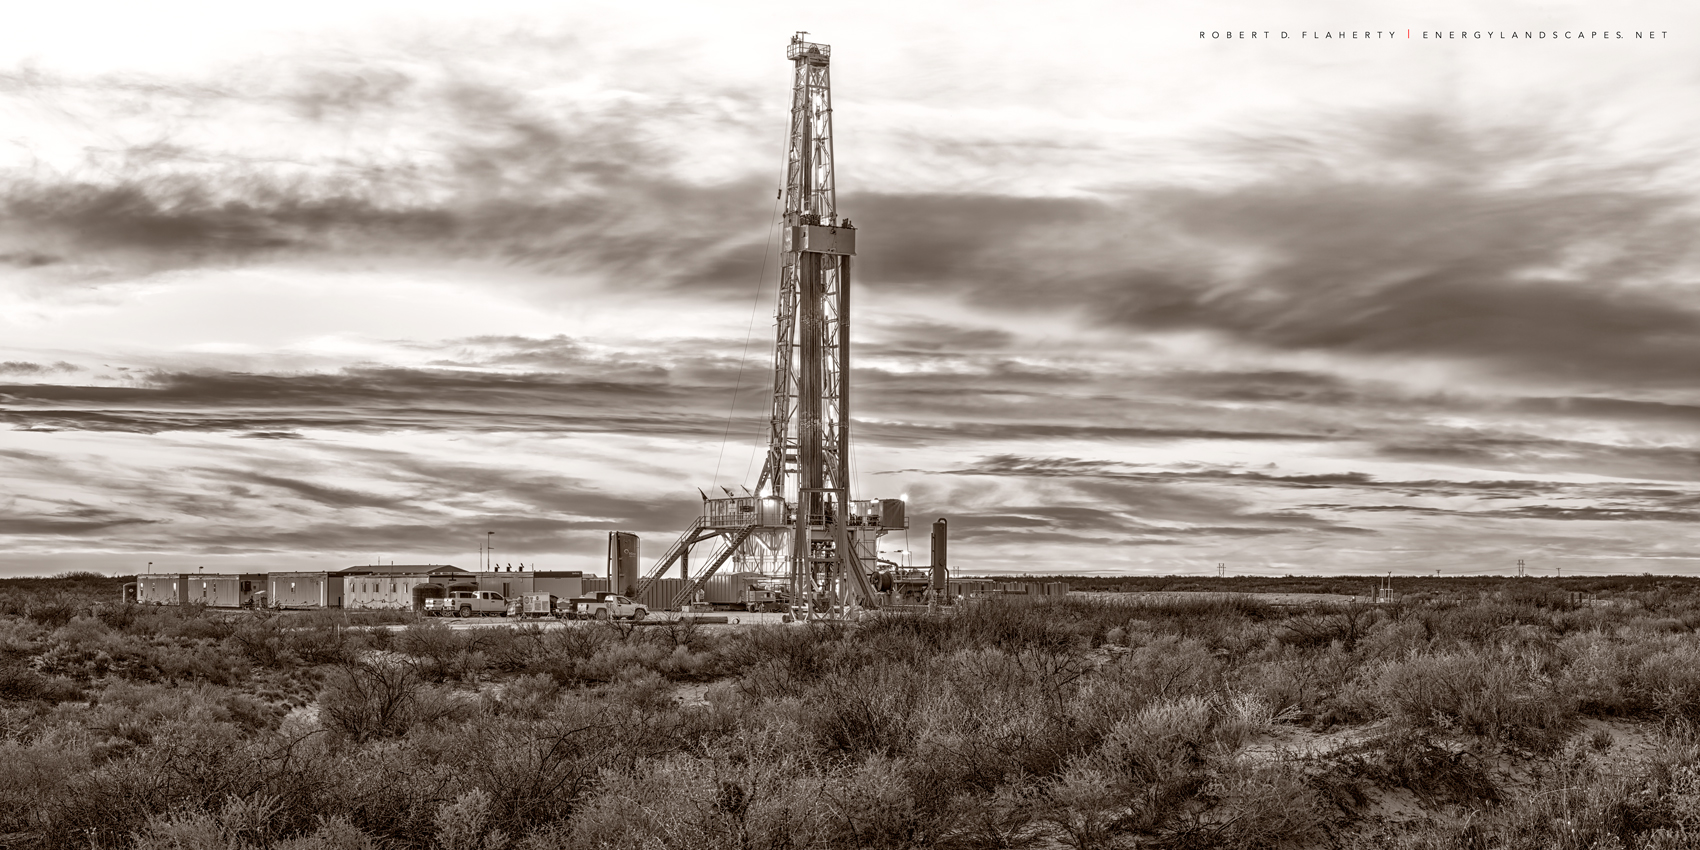 drilling rig, sepia, black & white photography, fine art black & white photography, Lea County New Mexico, Delaware Basin, Permian Basin, photo